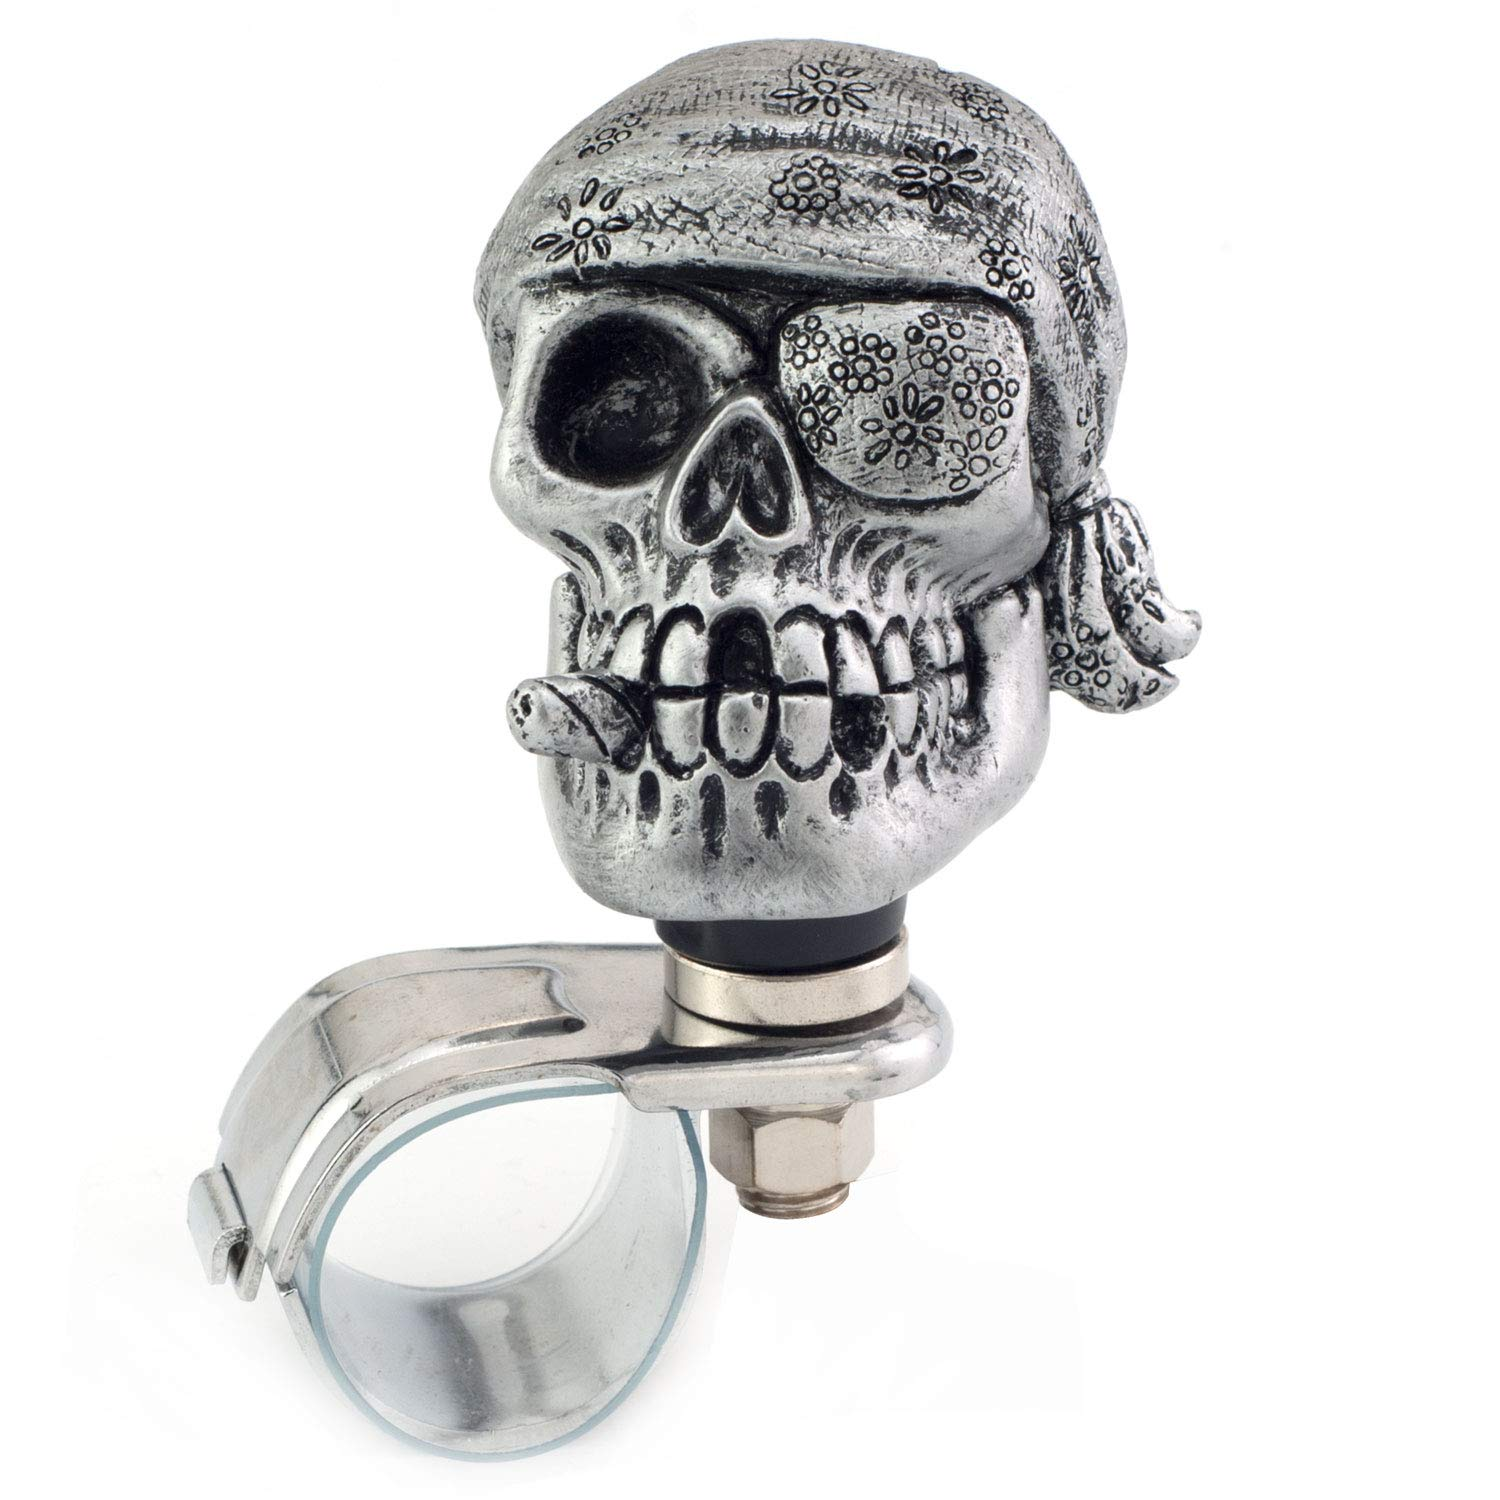 Black One-Eyed Pirate Style Car Power Grip Knobs Fit Most Manual Automatic Vehicles Thruifo Skull Car Handle Spinner Steering Wheel Suicide Knob